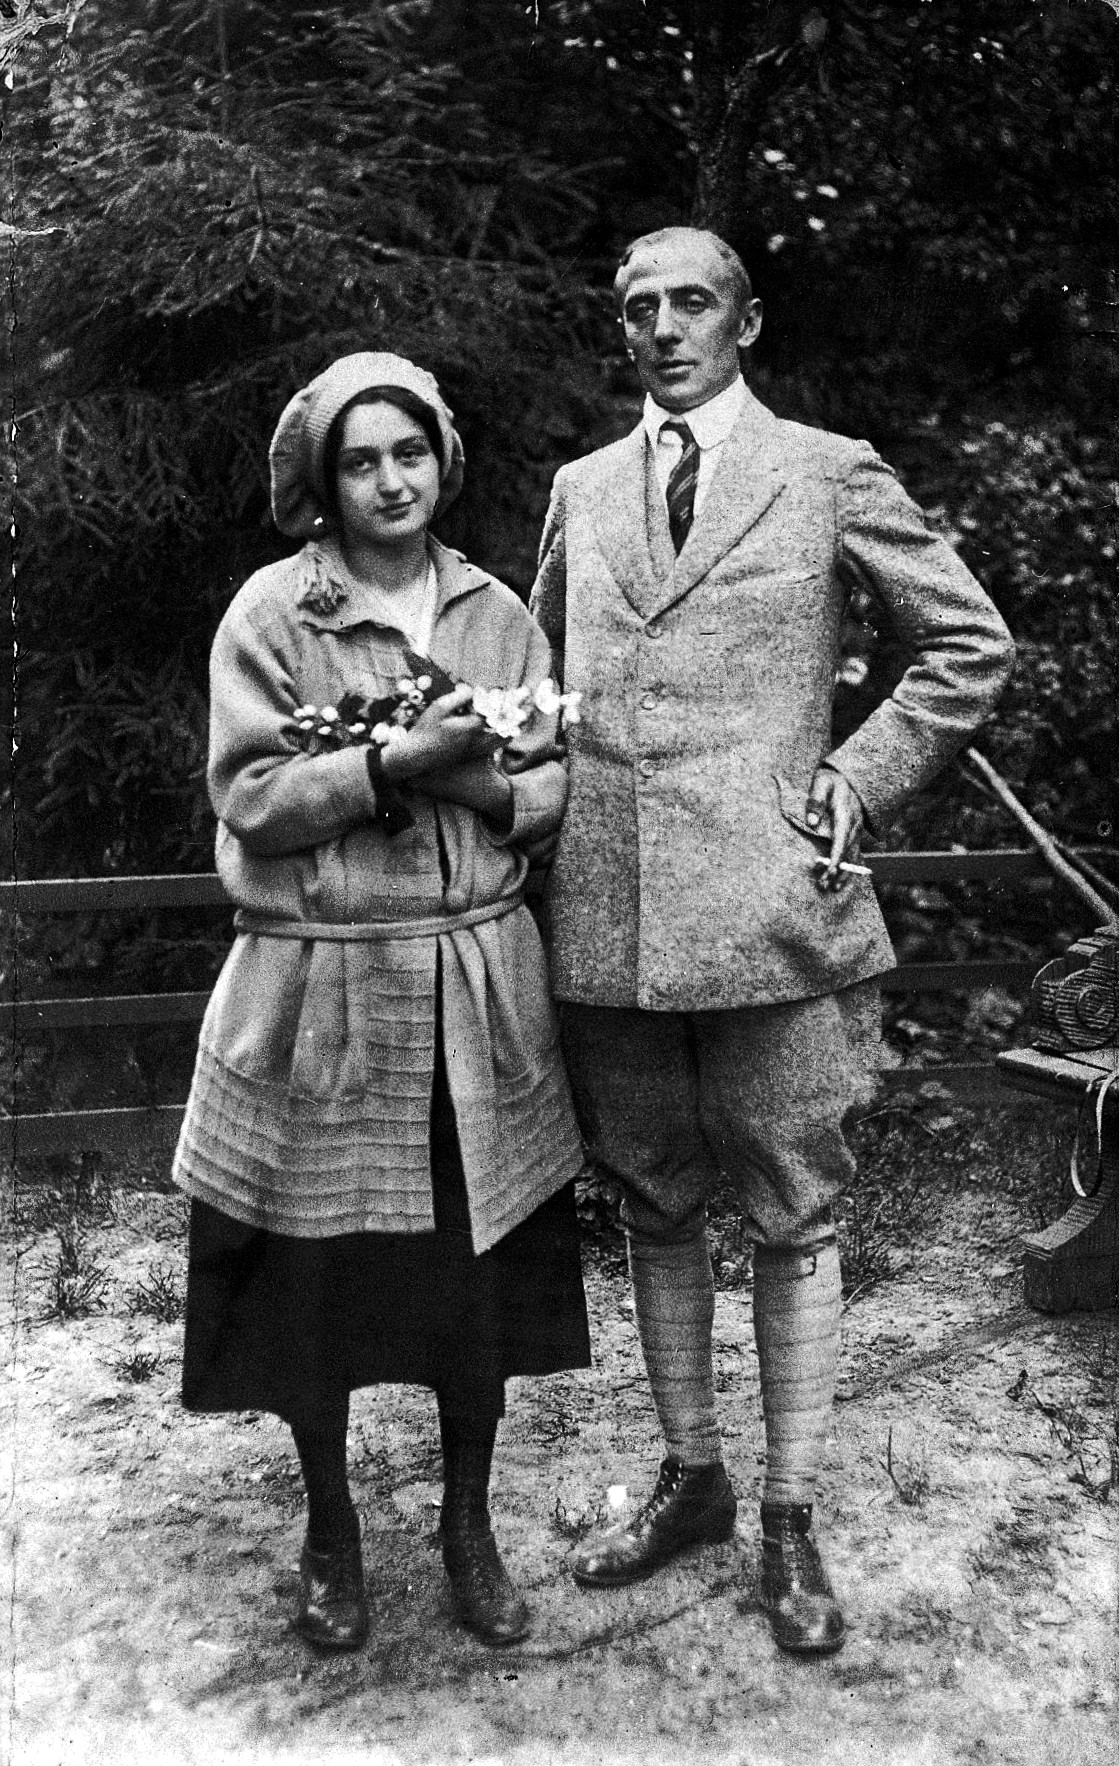 Photograph of Klein's daughter Melitta and her husband Walter Schmideberg